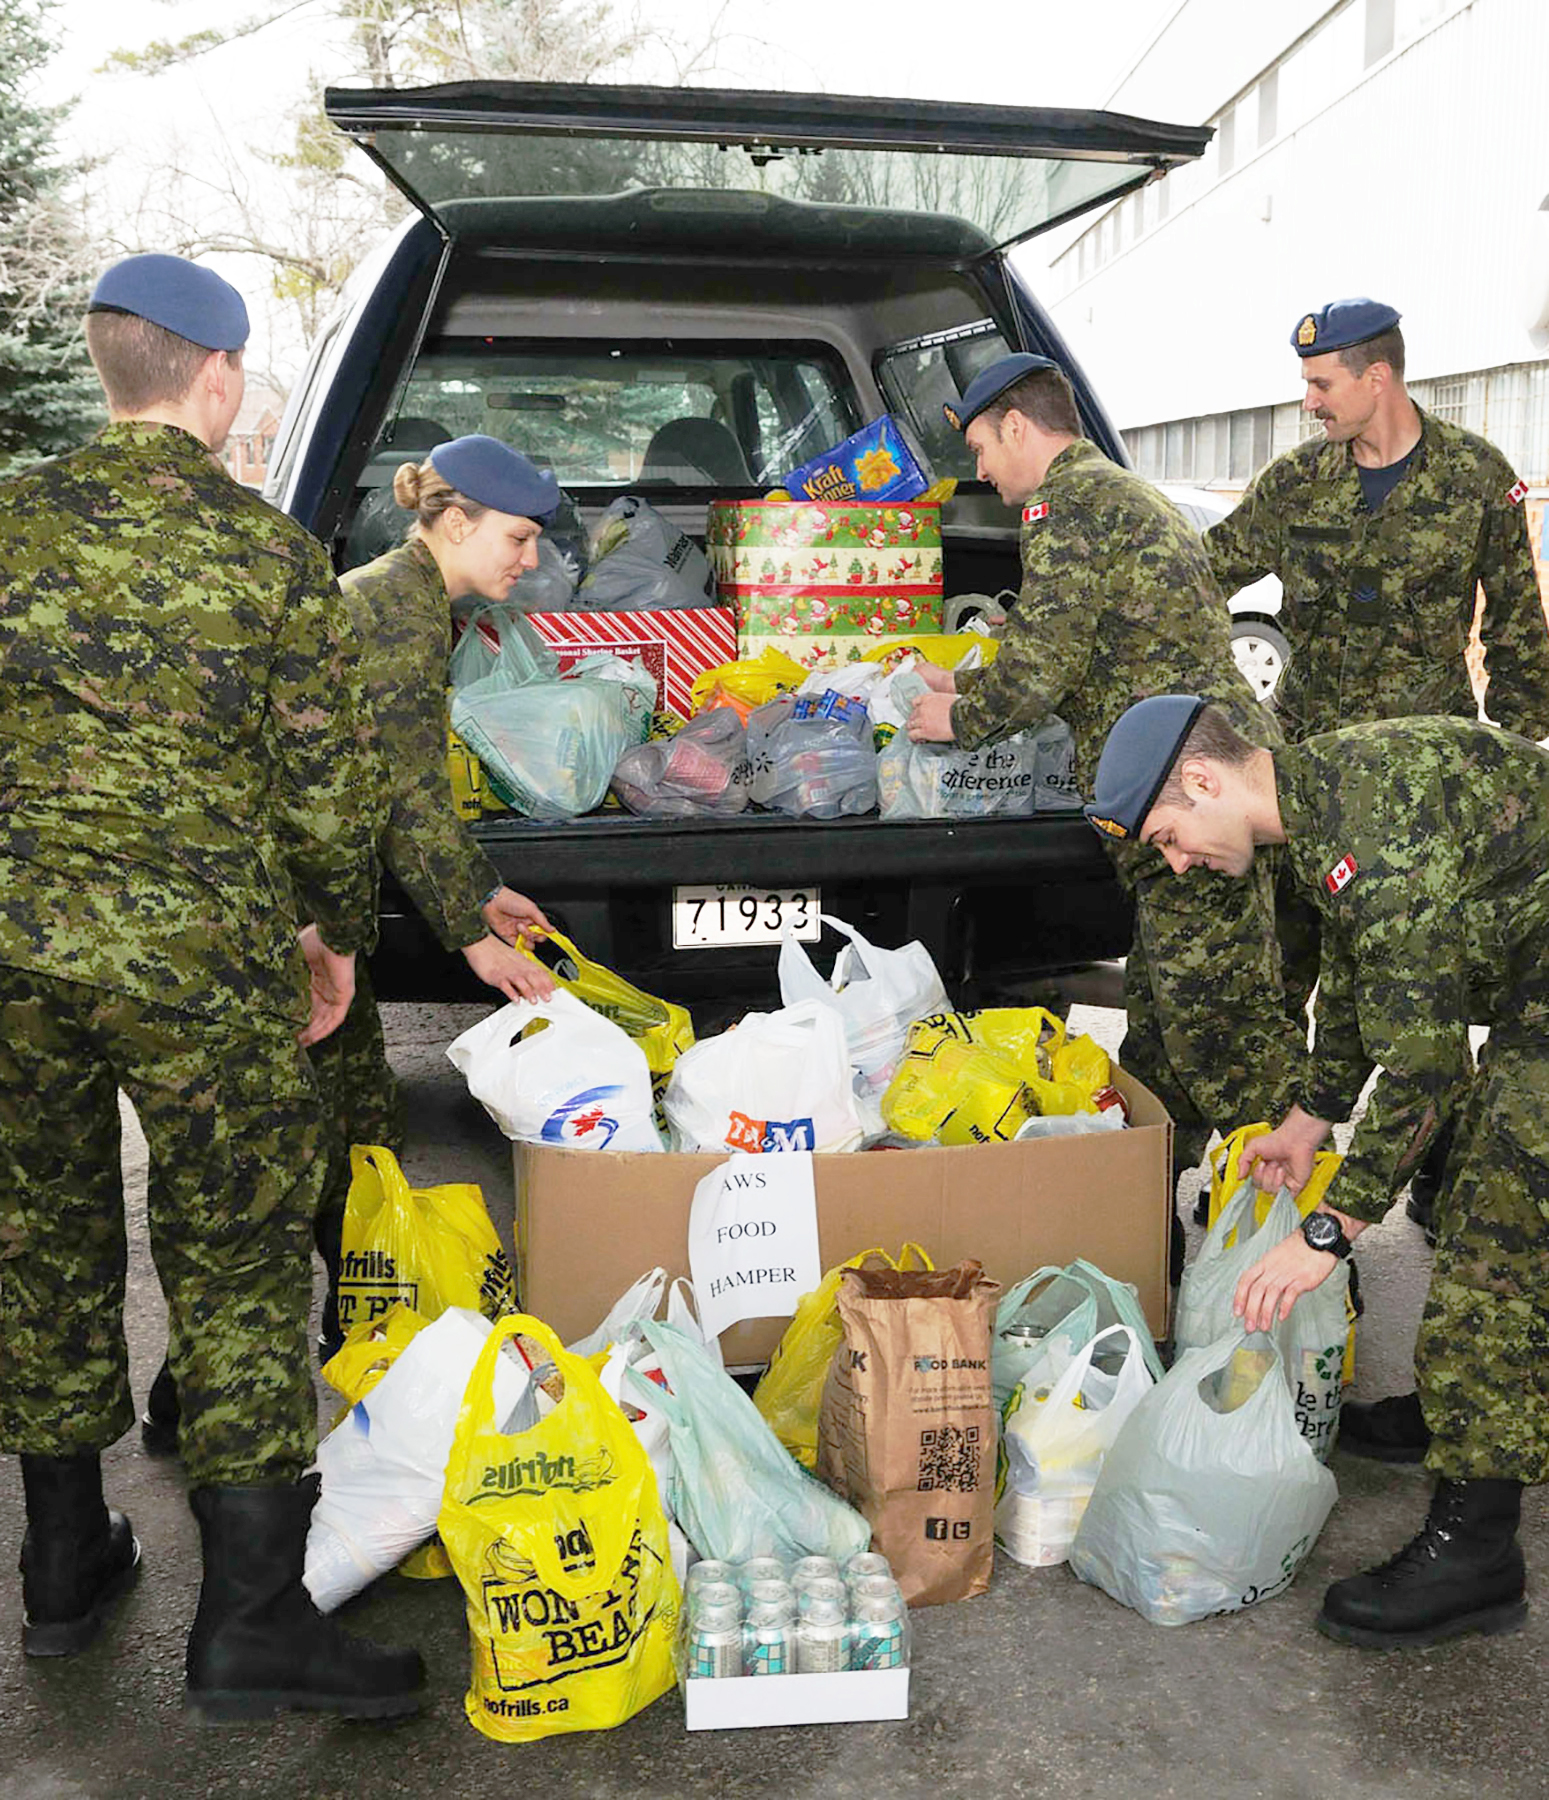 Private Spencer Hollerman (left), Private Amanda Dingman, Sergeant Howie Honka, Master Corporal Darrel Kresky and Private Doug Trinnear load more than 363 kilograms of non-perishable food collected for the Seasonal Sharing Basket by personnel of the Canadian Forces School of Aerospace Technology and Engineering, a lodger unit of 16 Wing Borden, Ontario, on December 3, 2012. The Seasonal Sharing Basket is a campaign providing assistance to Defence Team families in need of additional support over the stressful Christmas/Holiday period. PHOTO: Sergeant Kev Parle